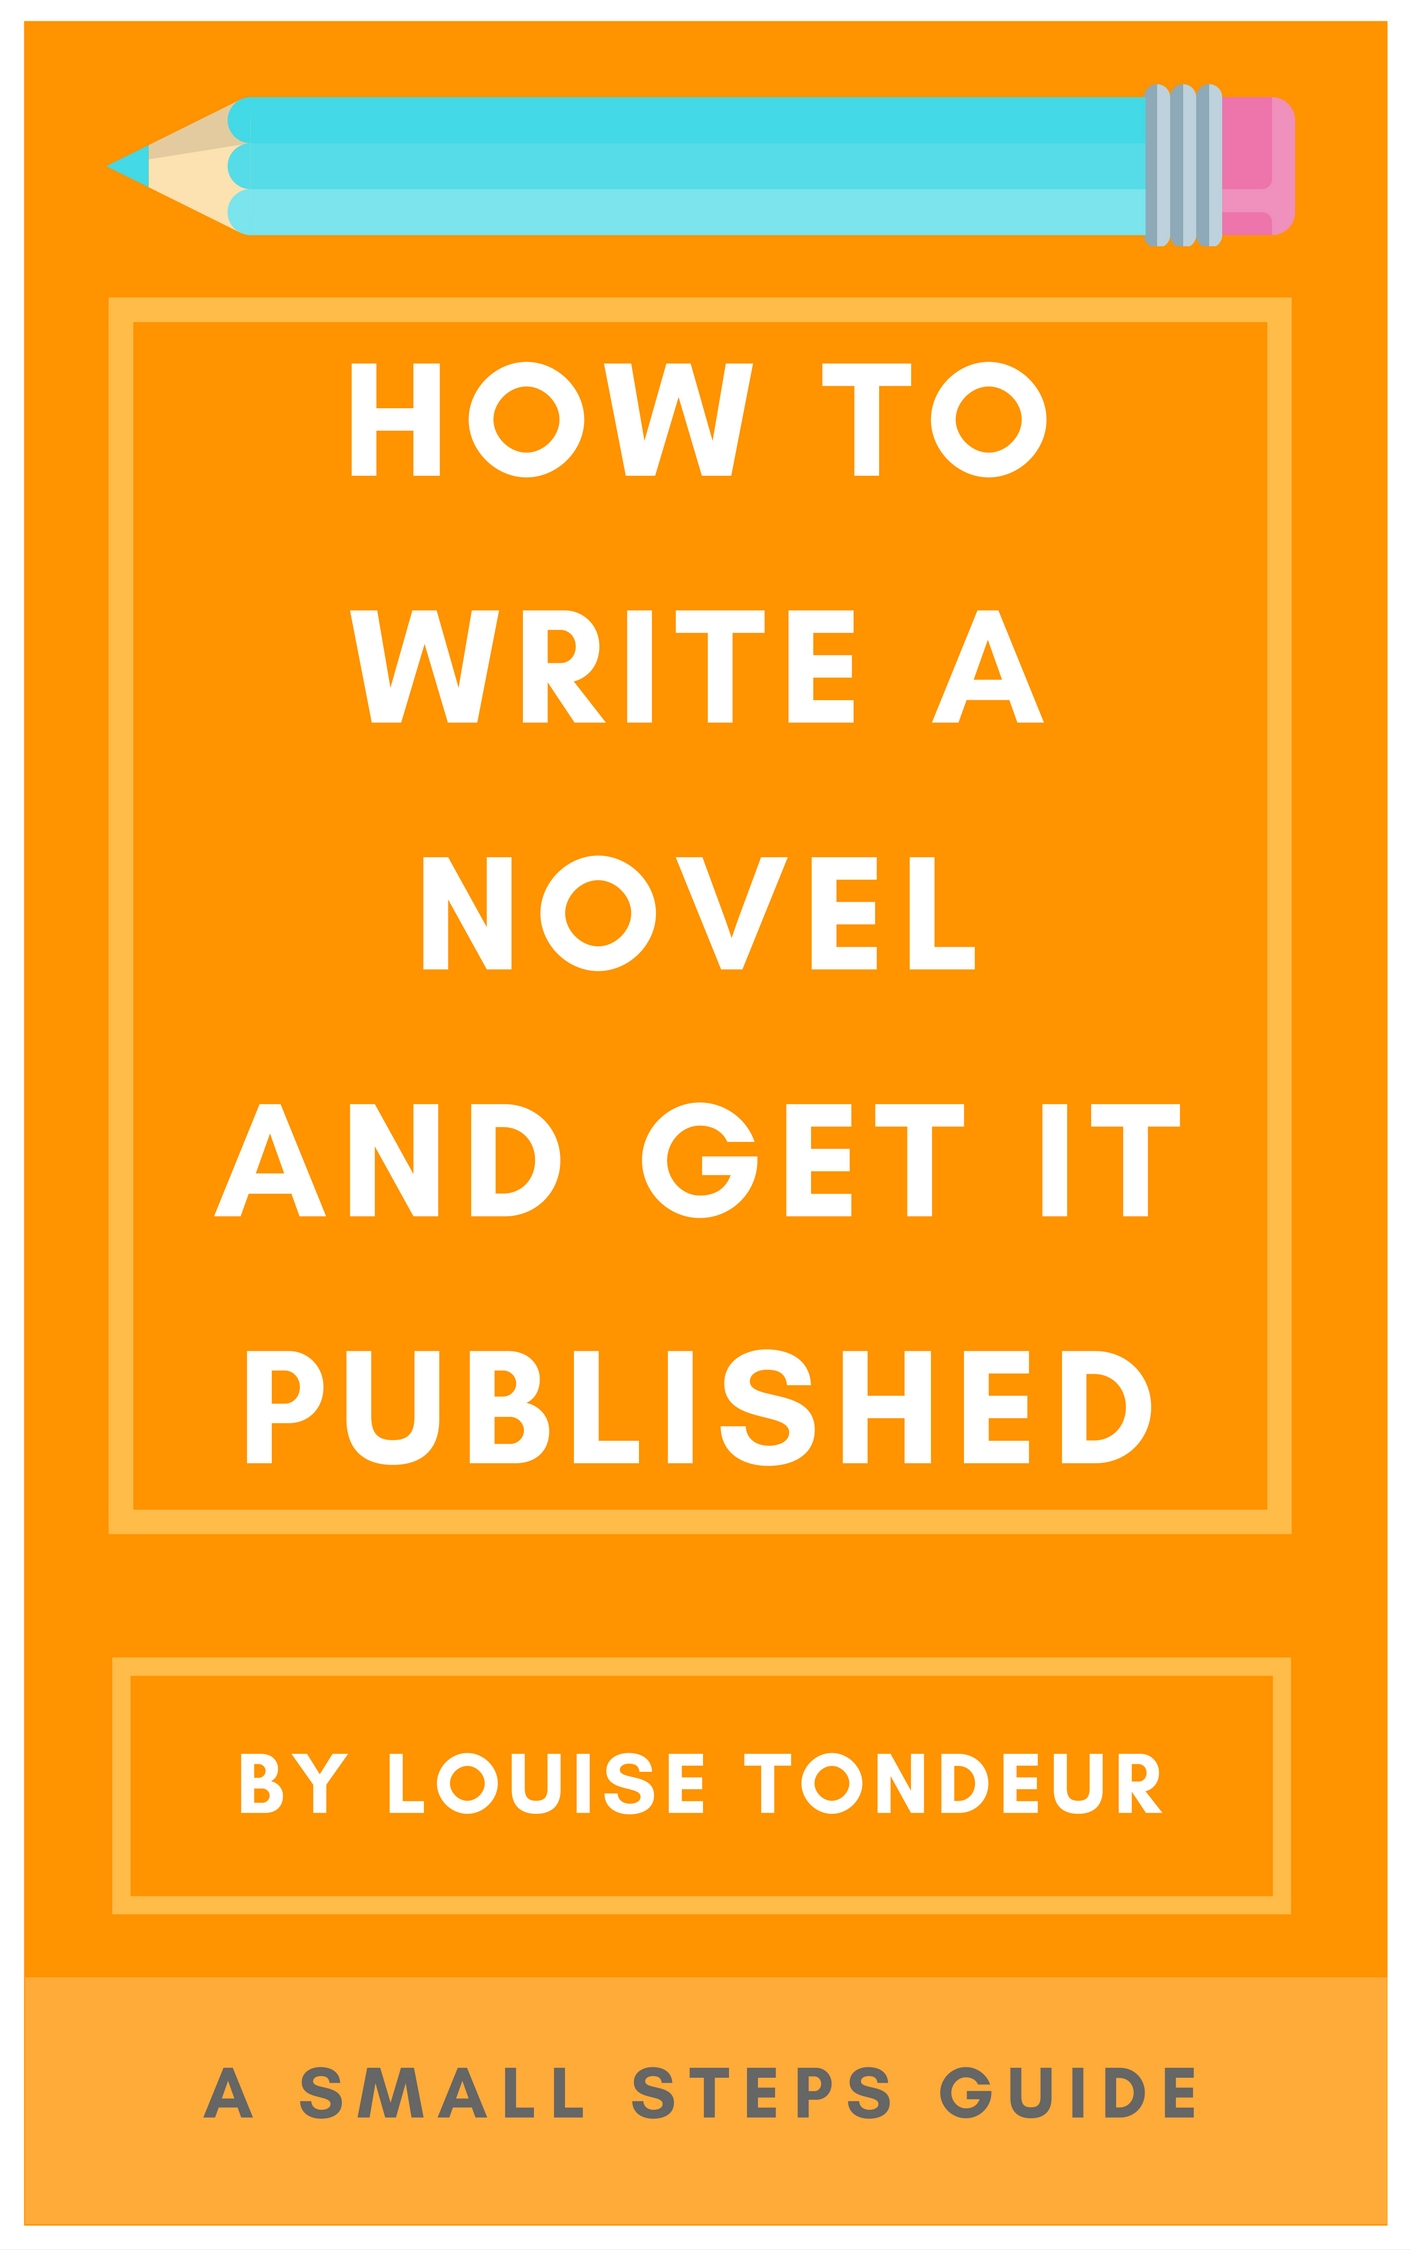 10 Ridiculously Simple Steps for Writing a Book